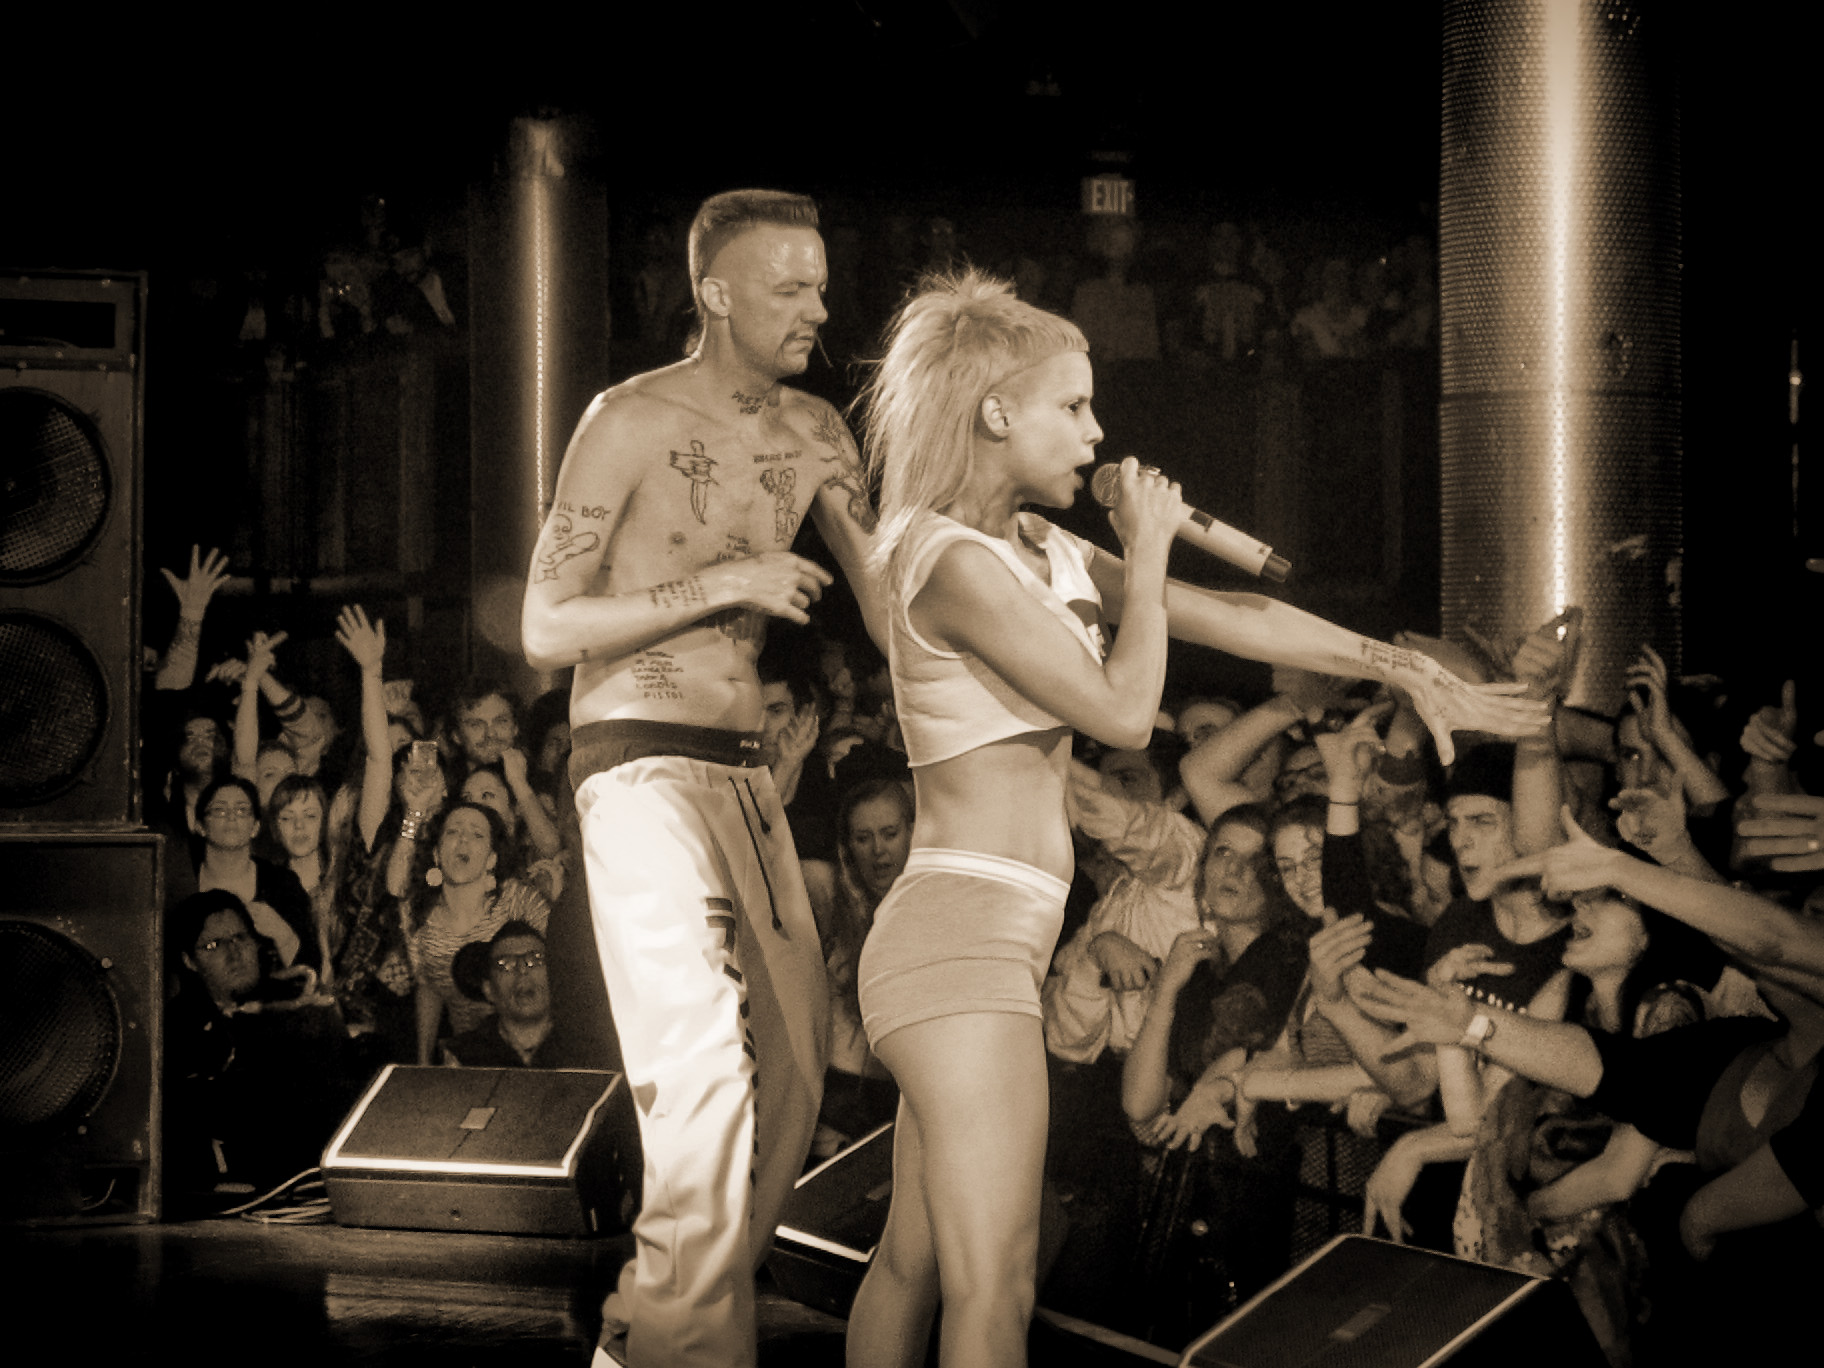 Die Antwoord revives the lost art of the music video with